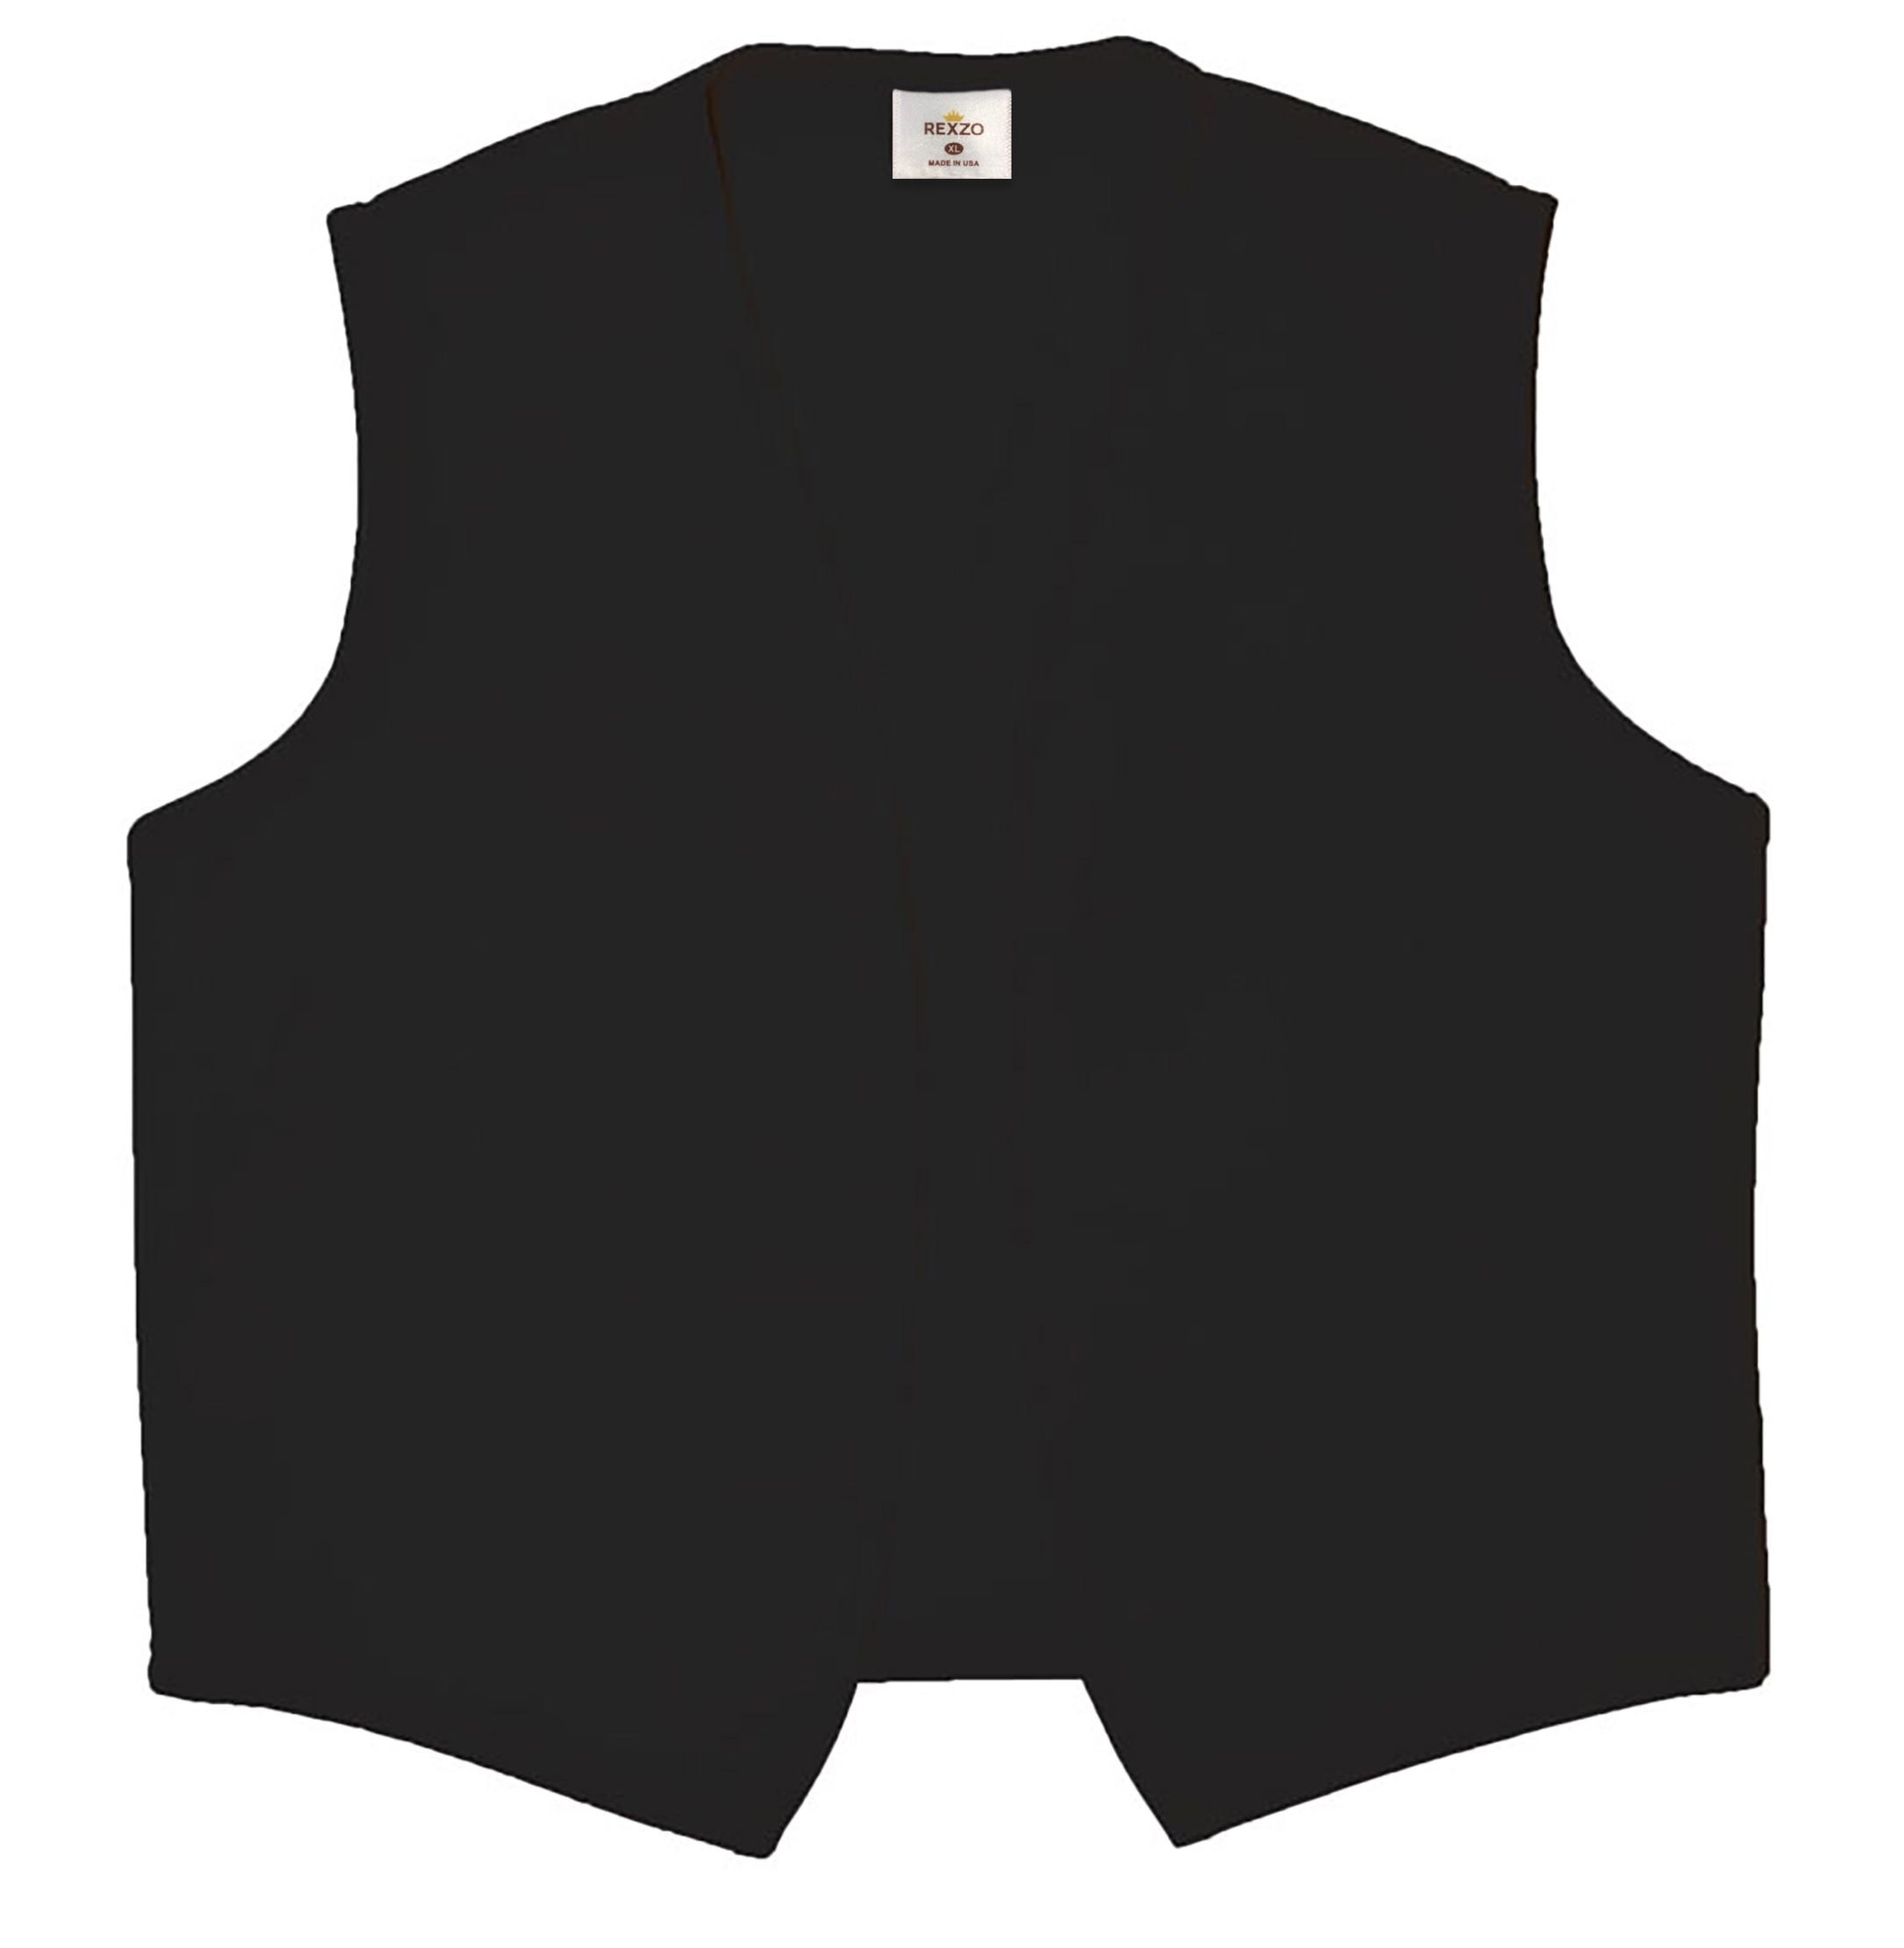 REXZO Unisex Vest No Pocket No Buttons– Made in The USA - Black, Large